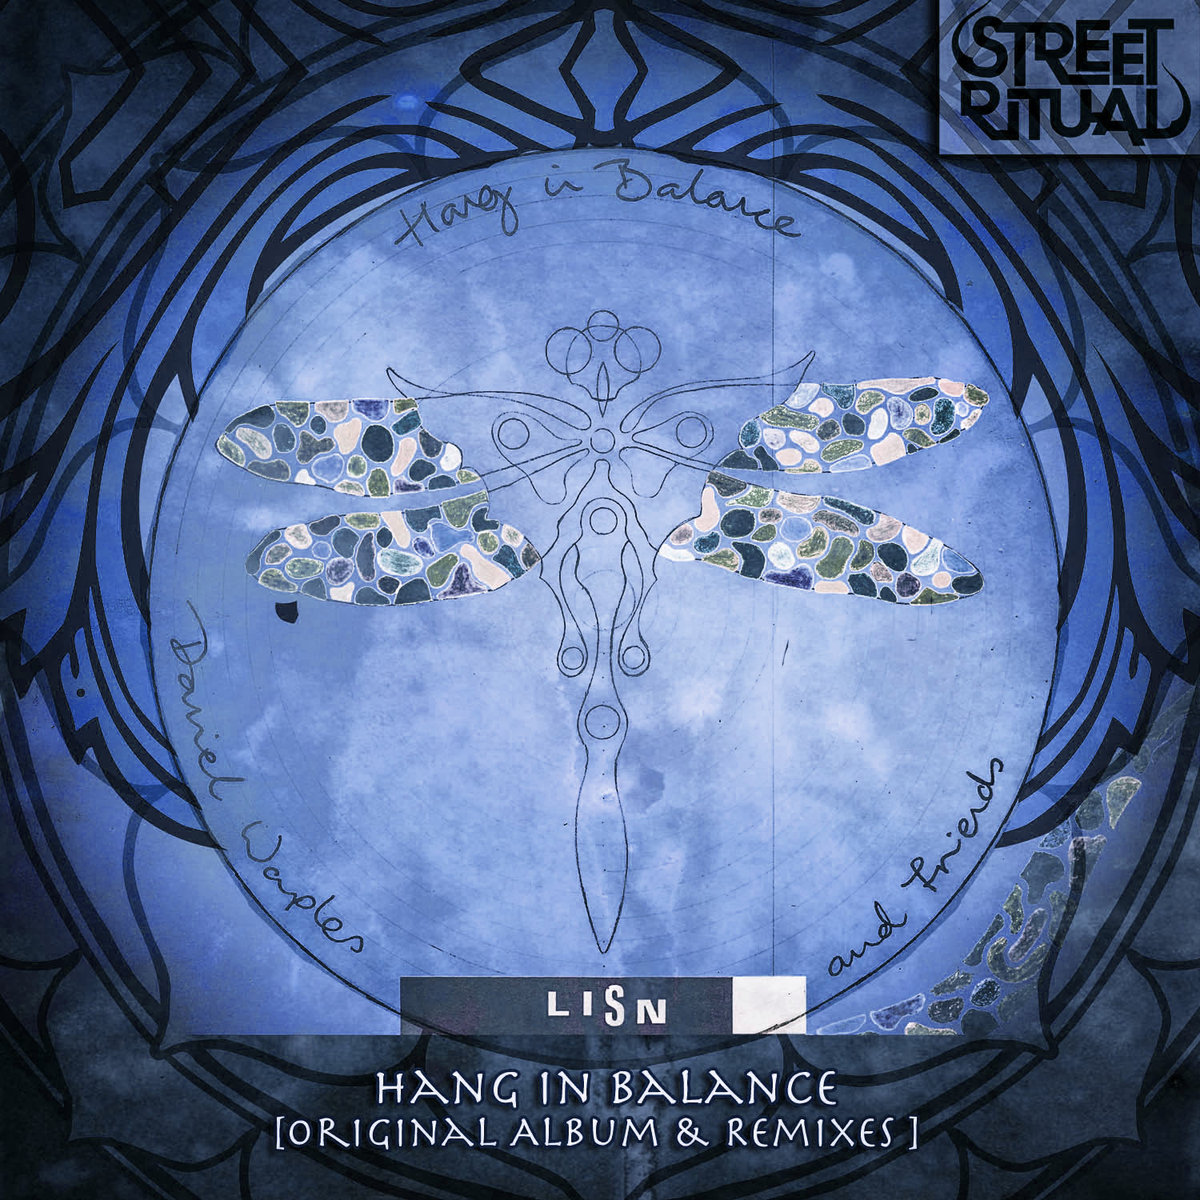 Hang in Balance - Midnight @ 'Lisn (Remixes & Originals)' album (bass, daniel waples)